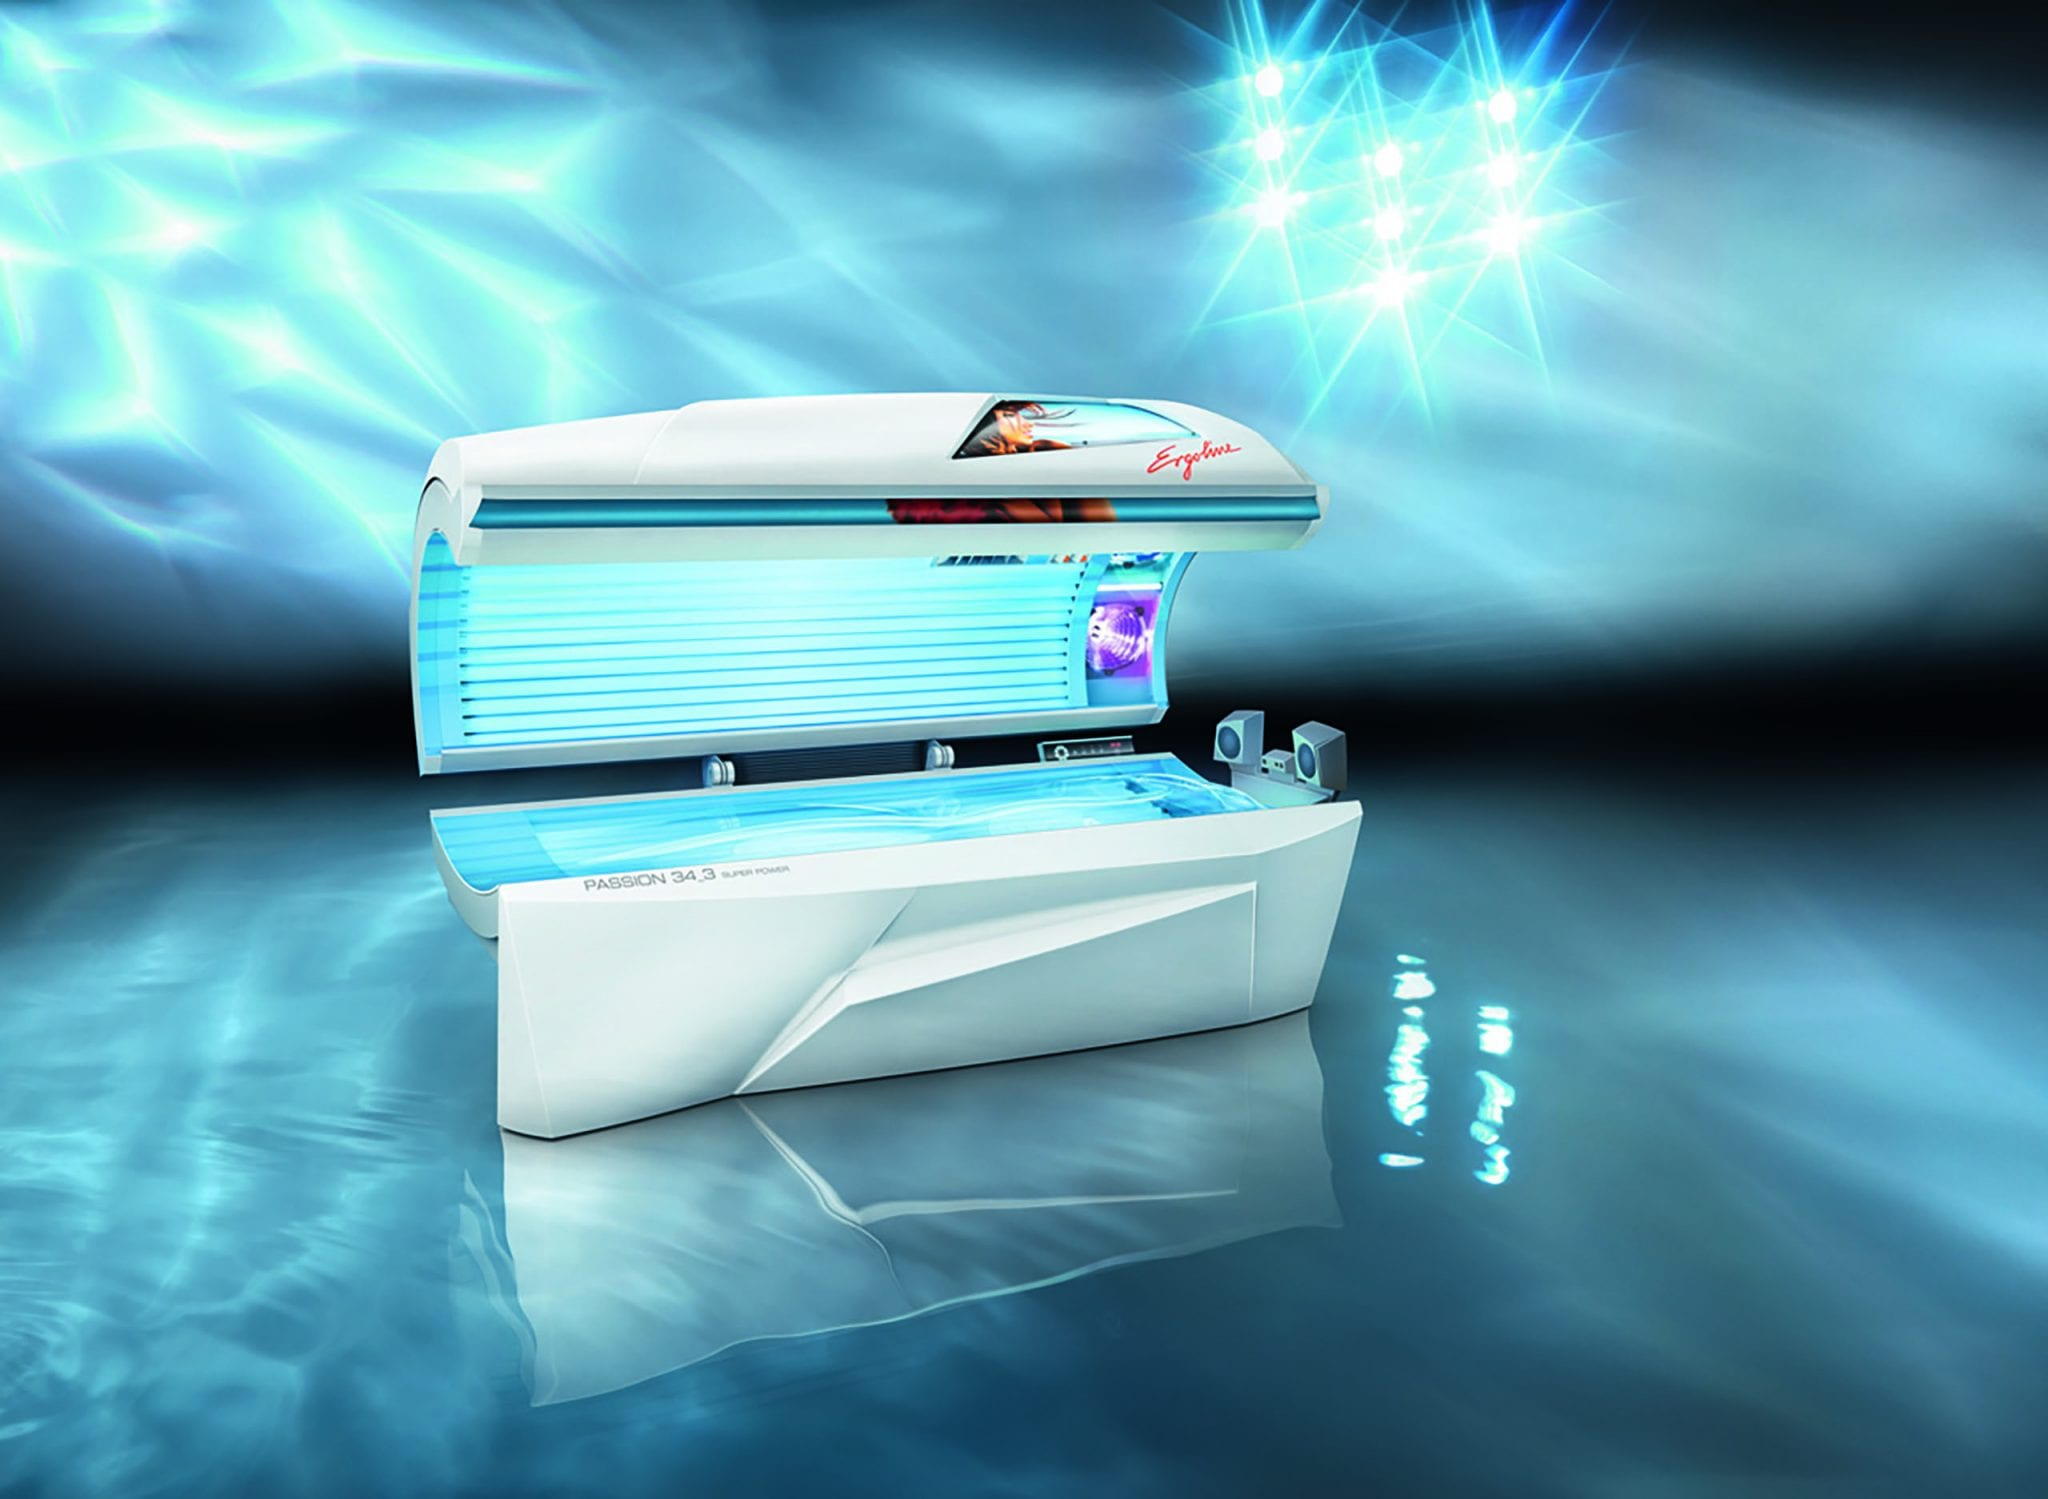 Passion tanning bed